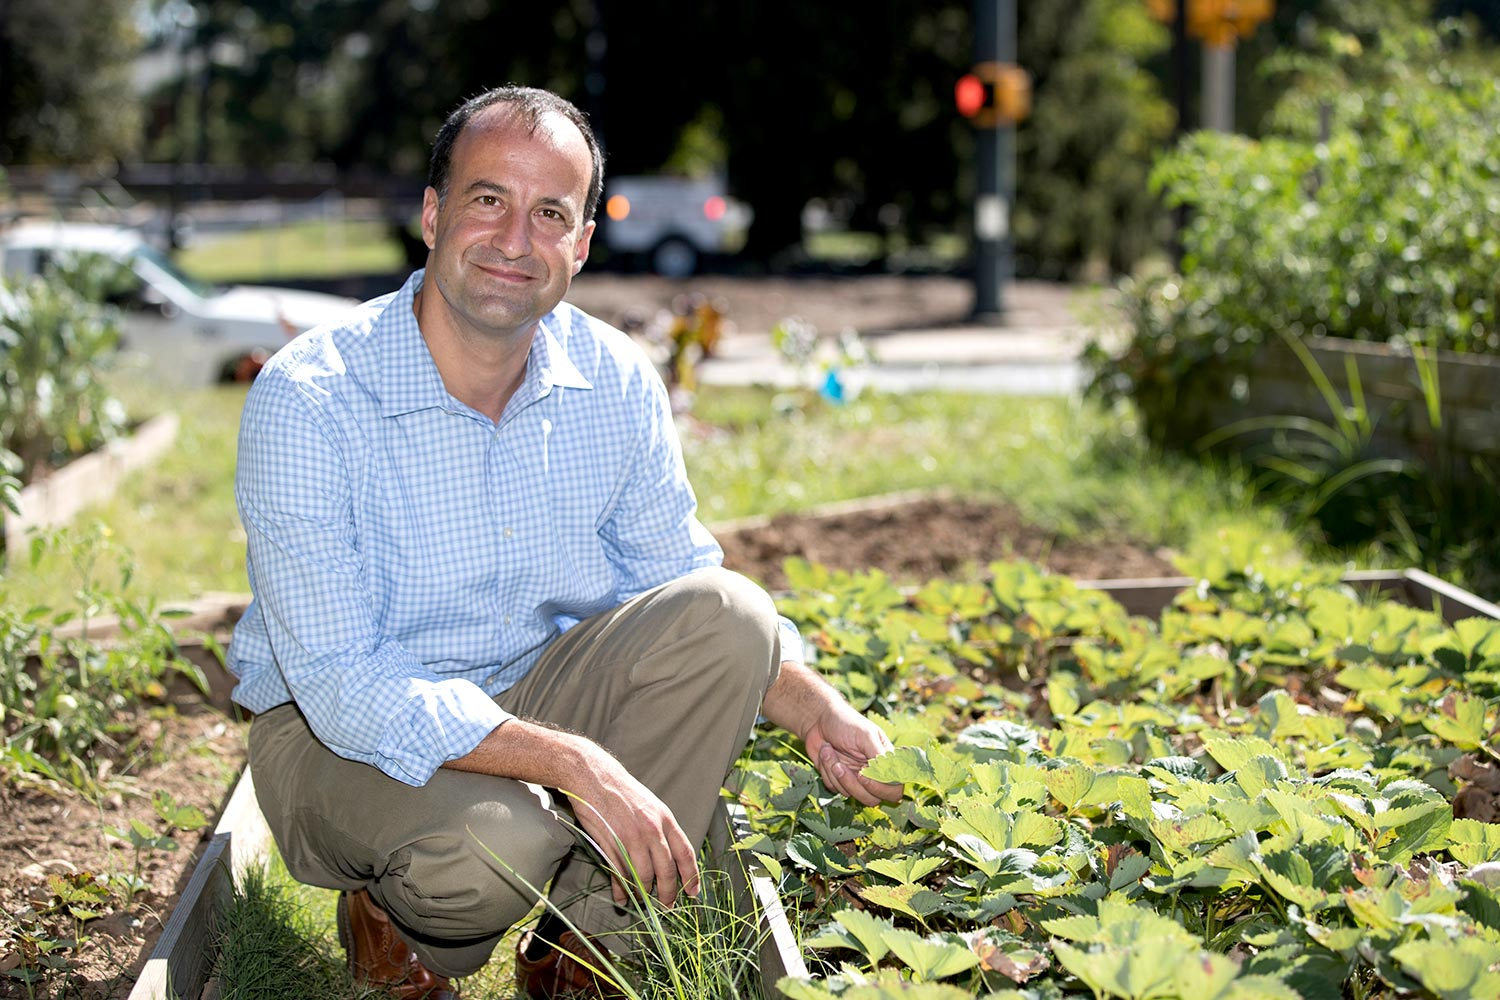 Associate economics professor Federico Ciliberto co-led the largest research study to date examining how genetically modified soybeans and maize have impacted pesticide use in the U.S.